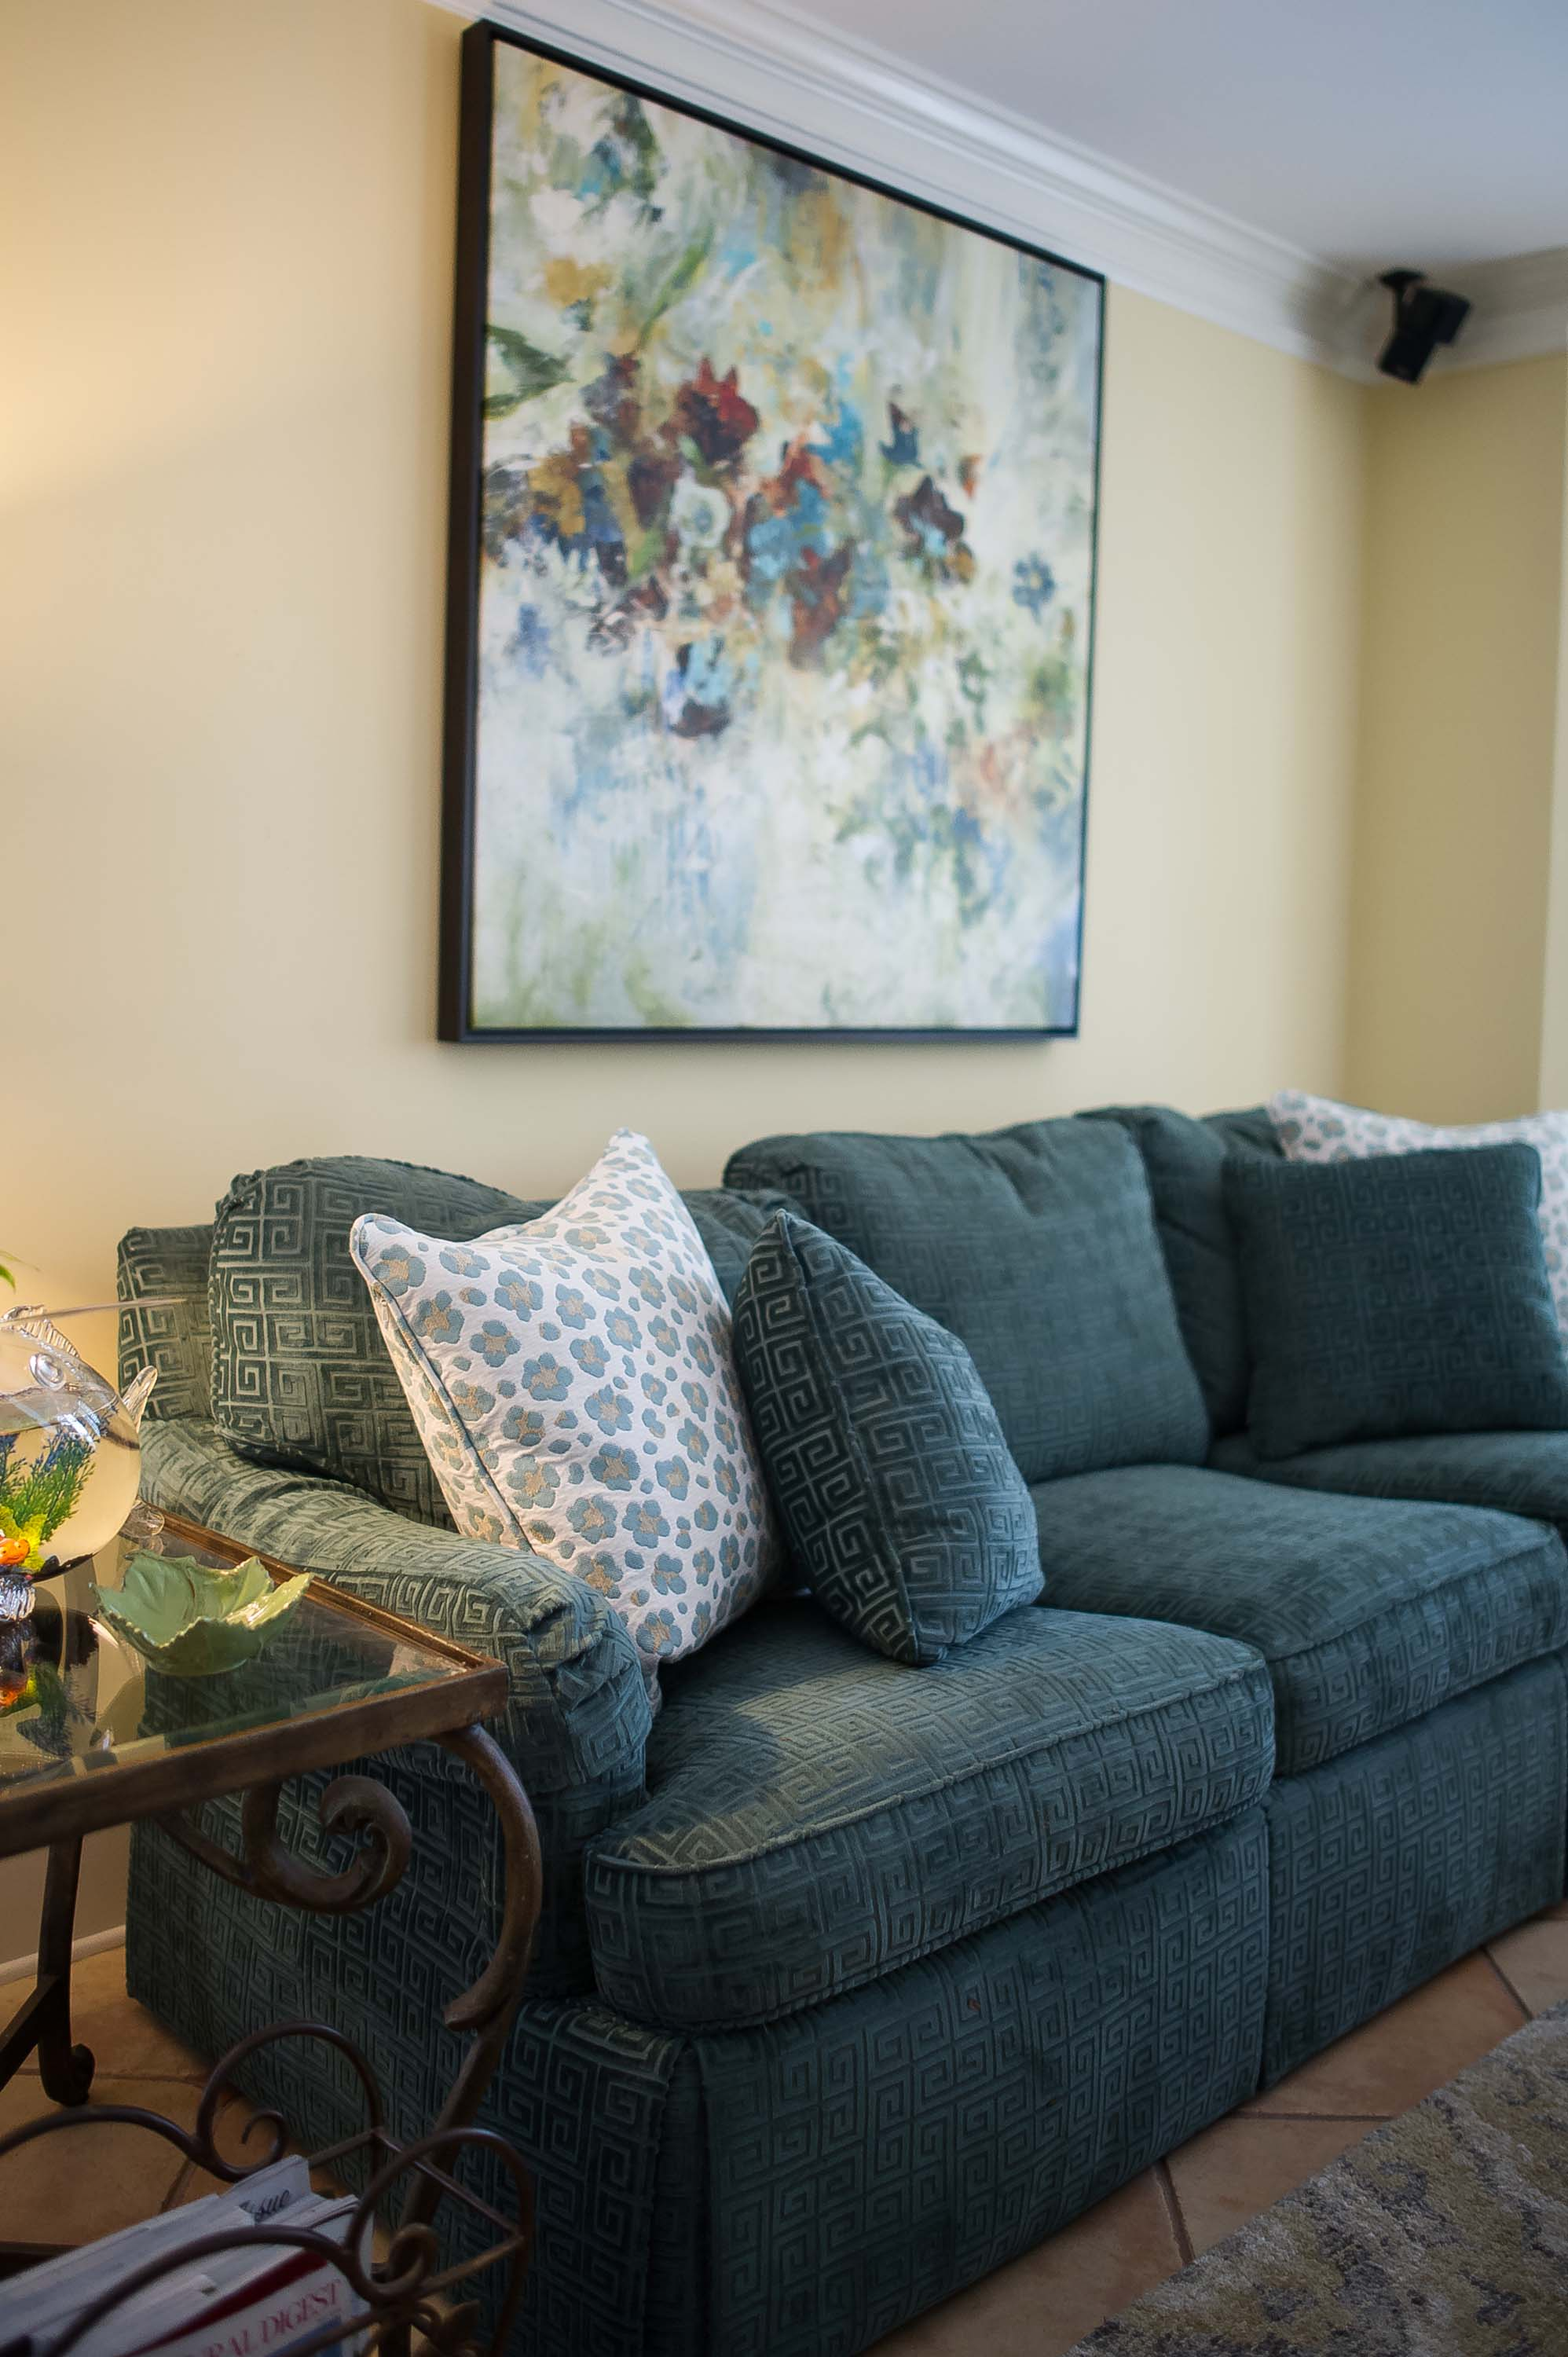 Living room with sofa, set of pillows and artwork on the wall